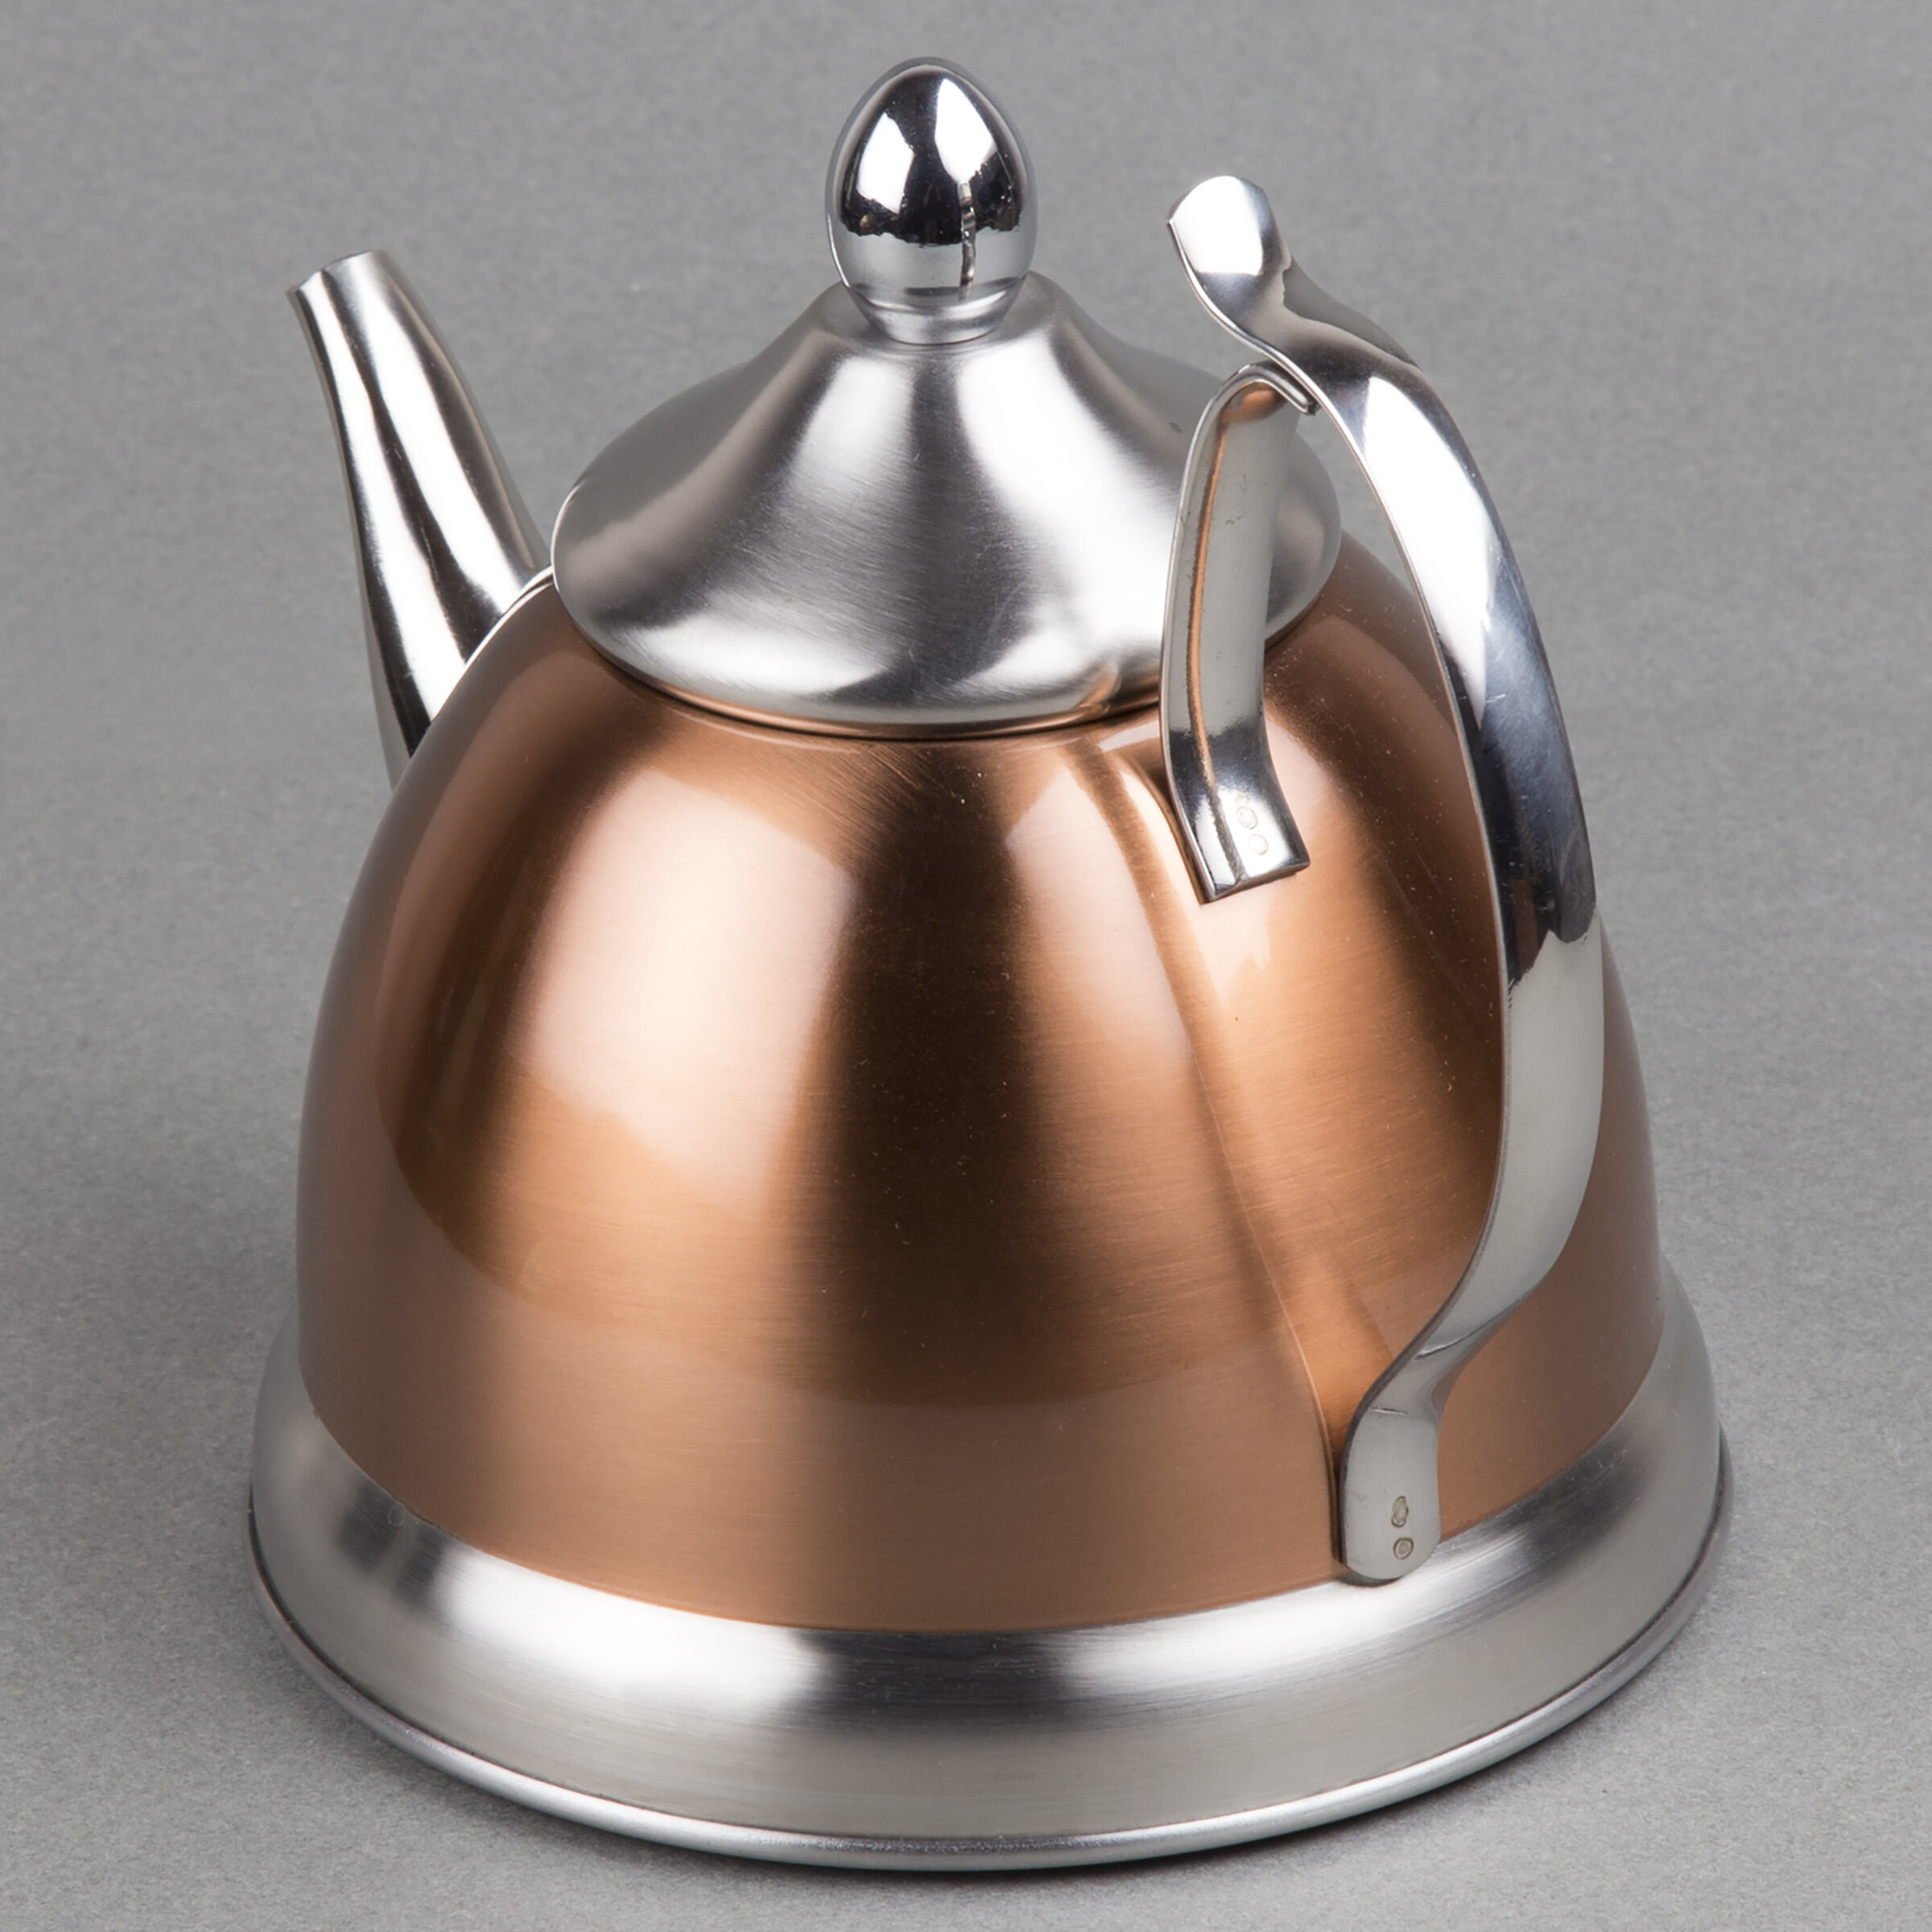 creative home 1 qt nobili tea stainless steel stovetop